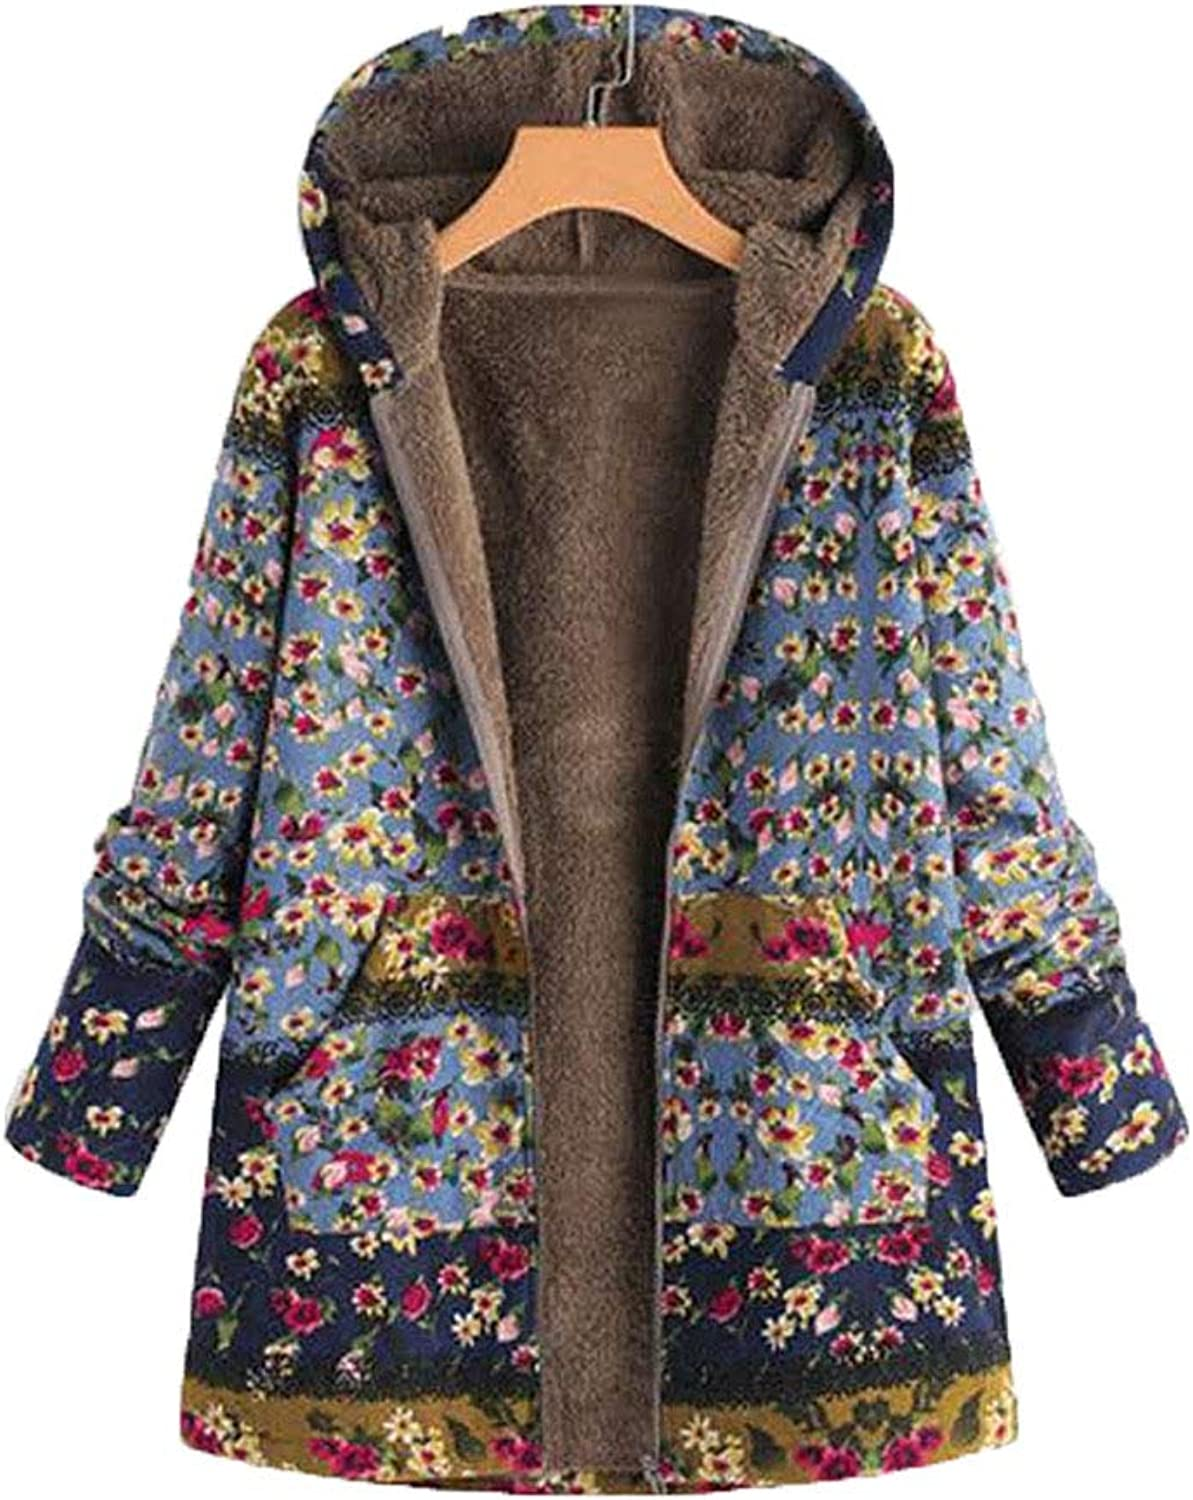 Women Lady Retro Printed Hooded Warm Jacket with Zipper for Female Long Sleeve Casual Dresses Style Outwear,bluee,XXXL